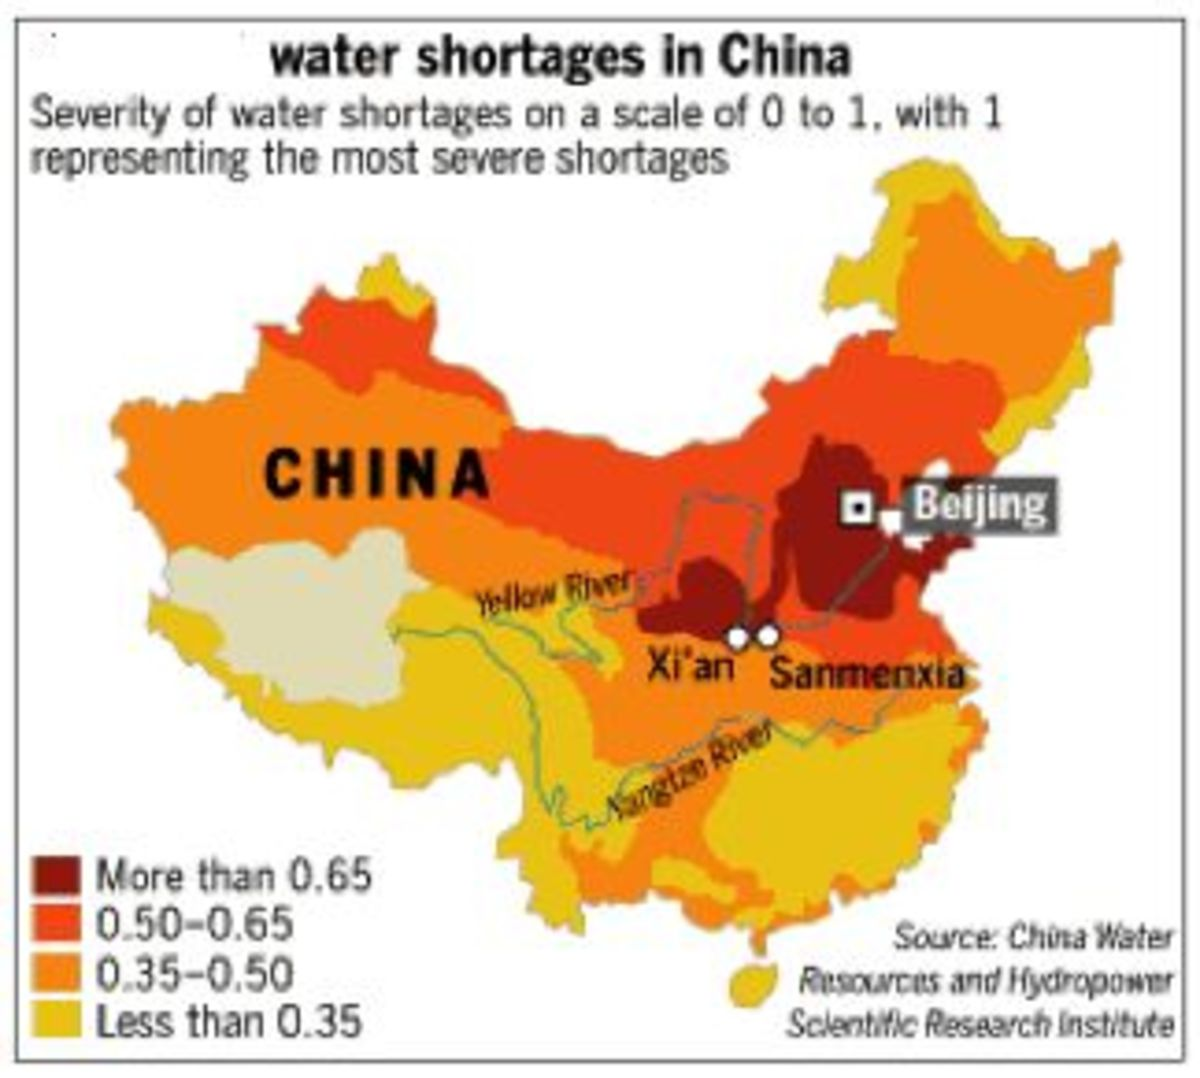 Hydro Projects in Tibet: Why China's Neighbors are Worried